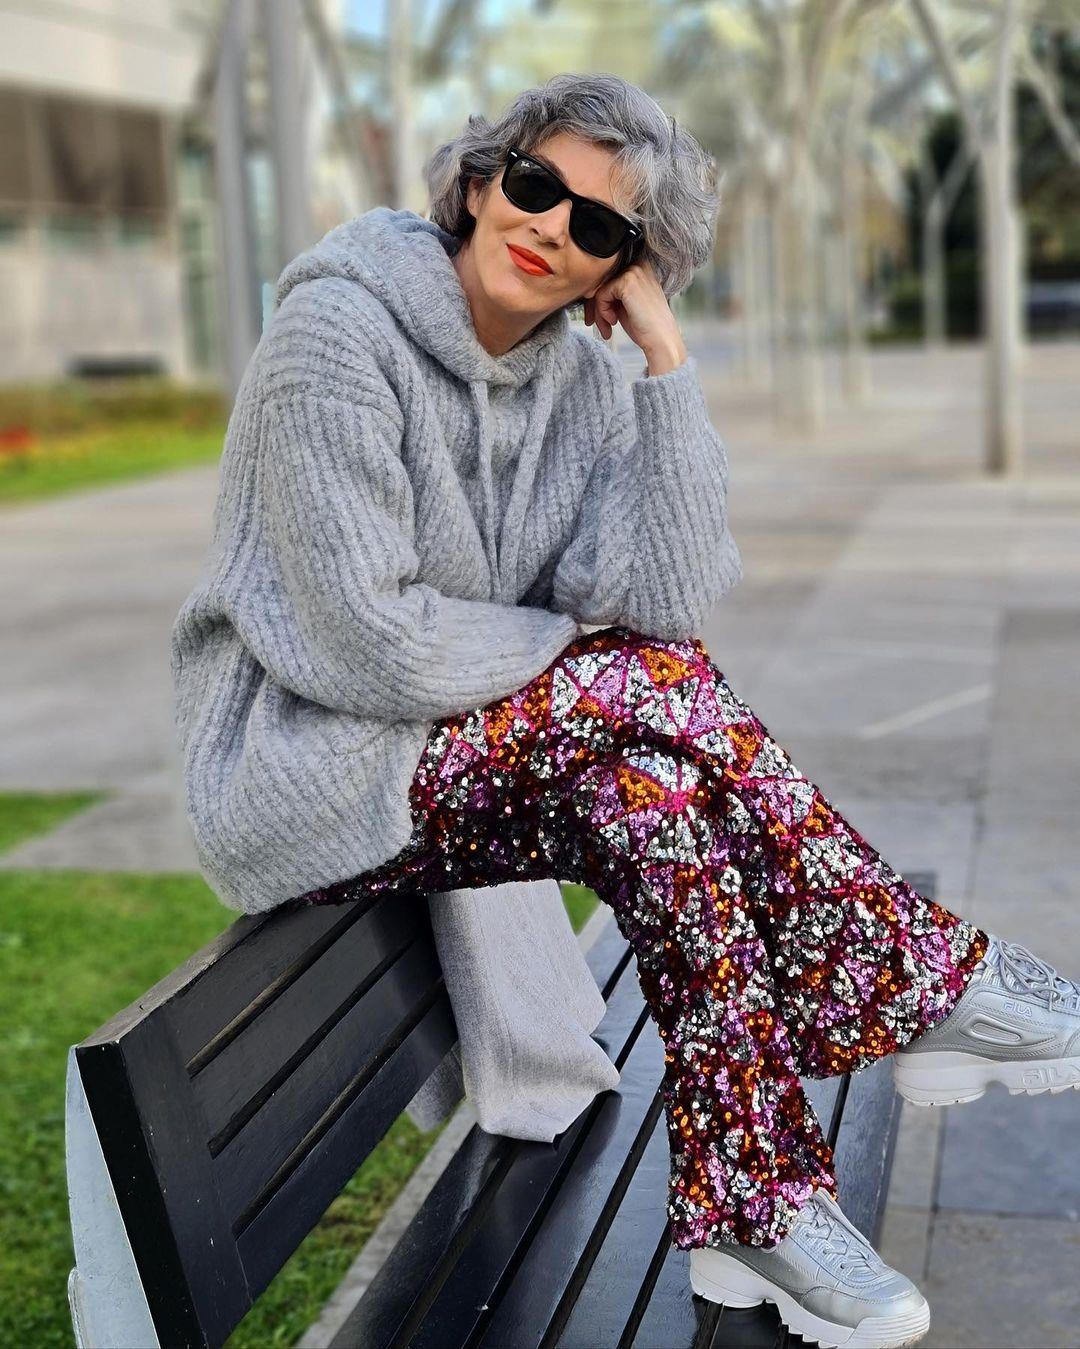 Carmen moan. Knitted sweatshirt, sequin pants and sneakers